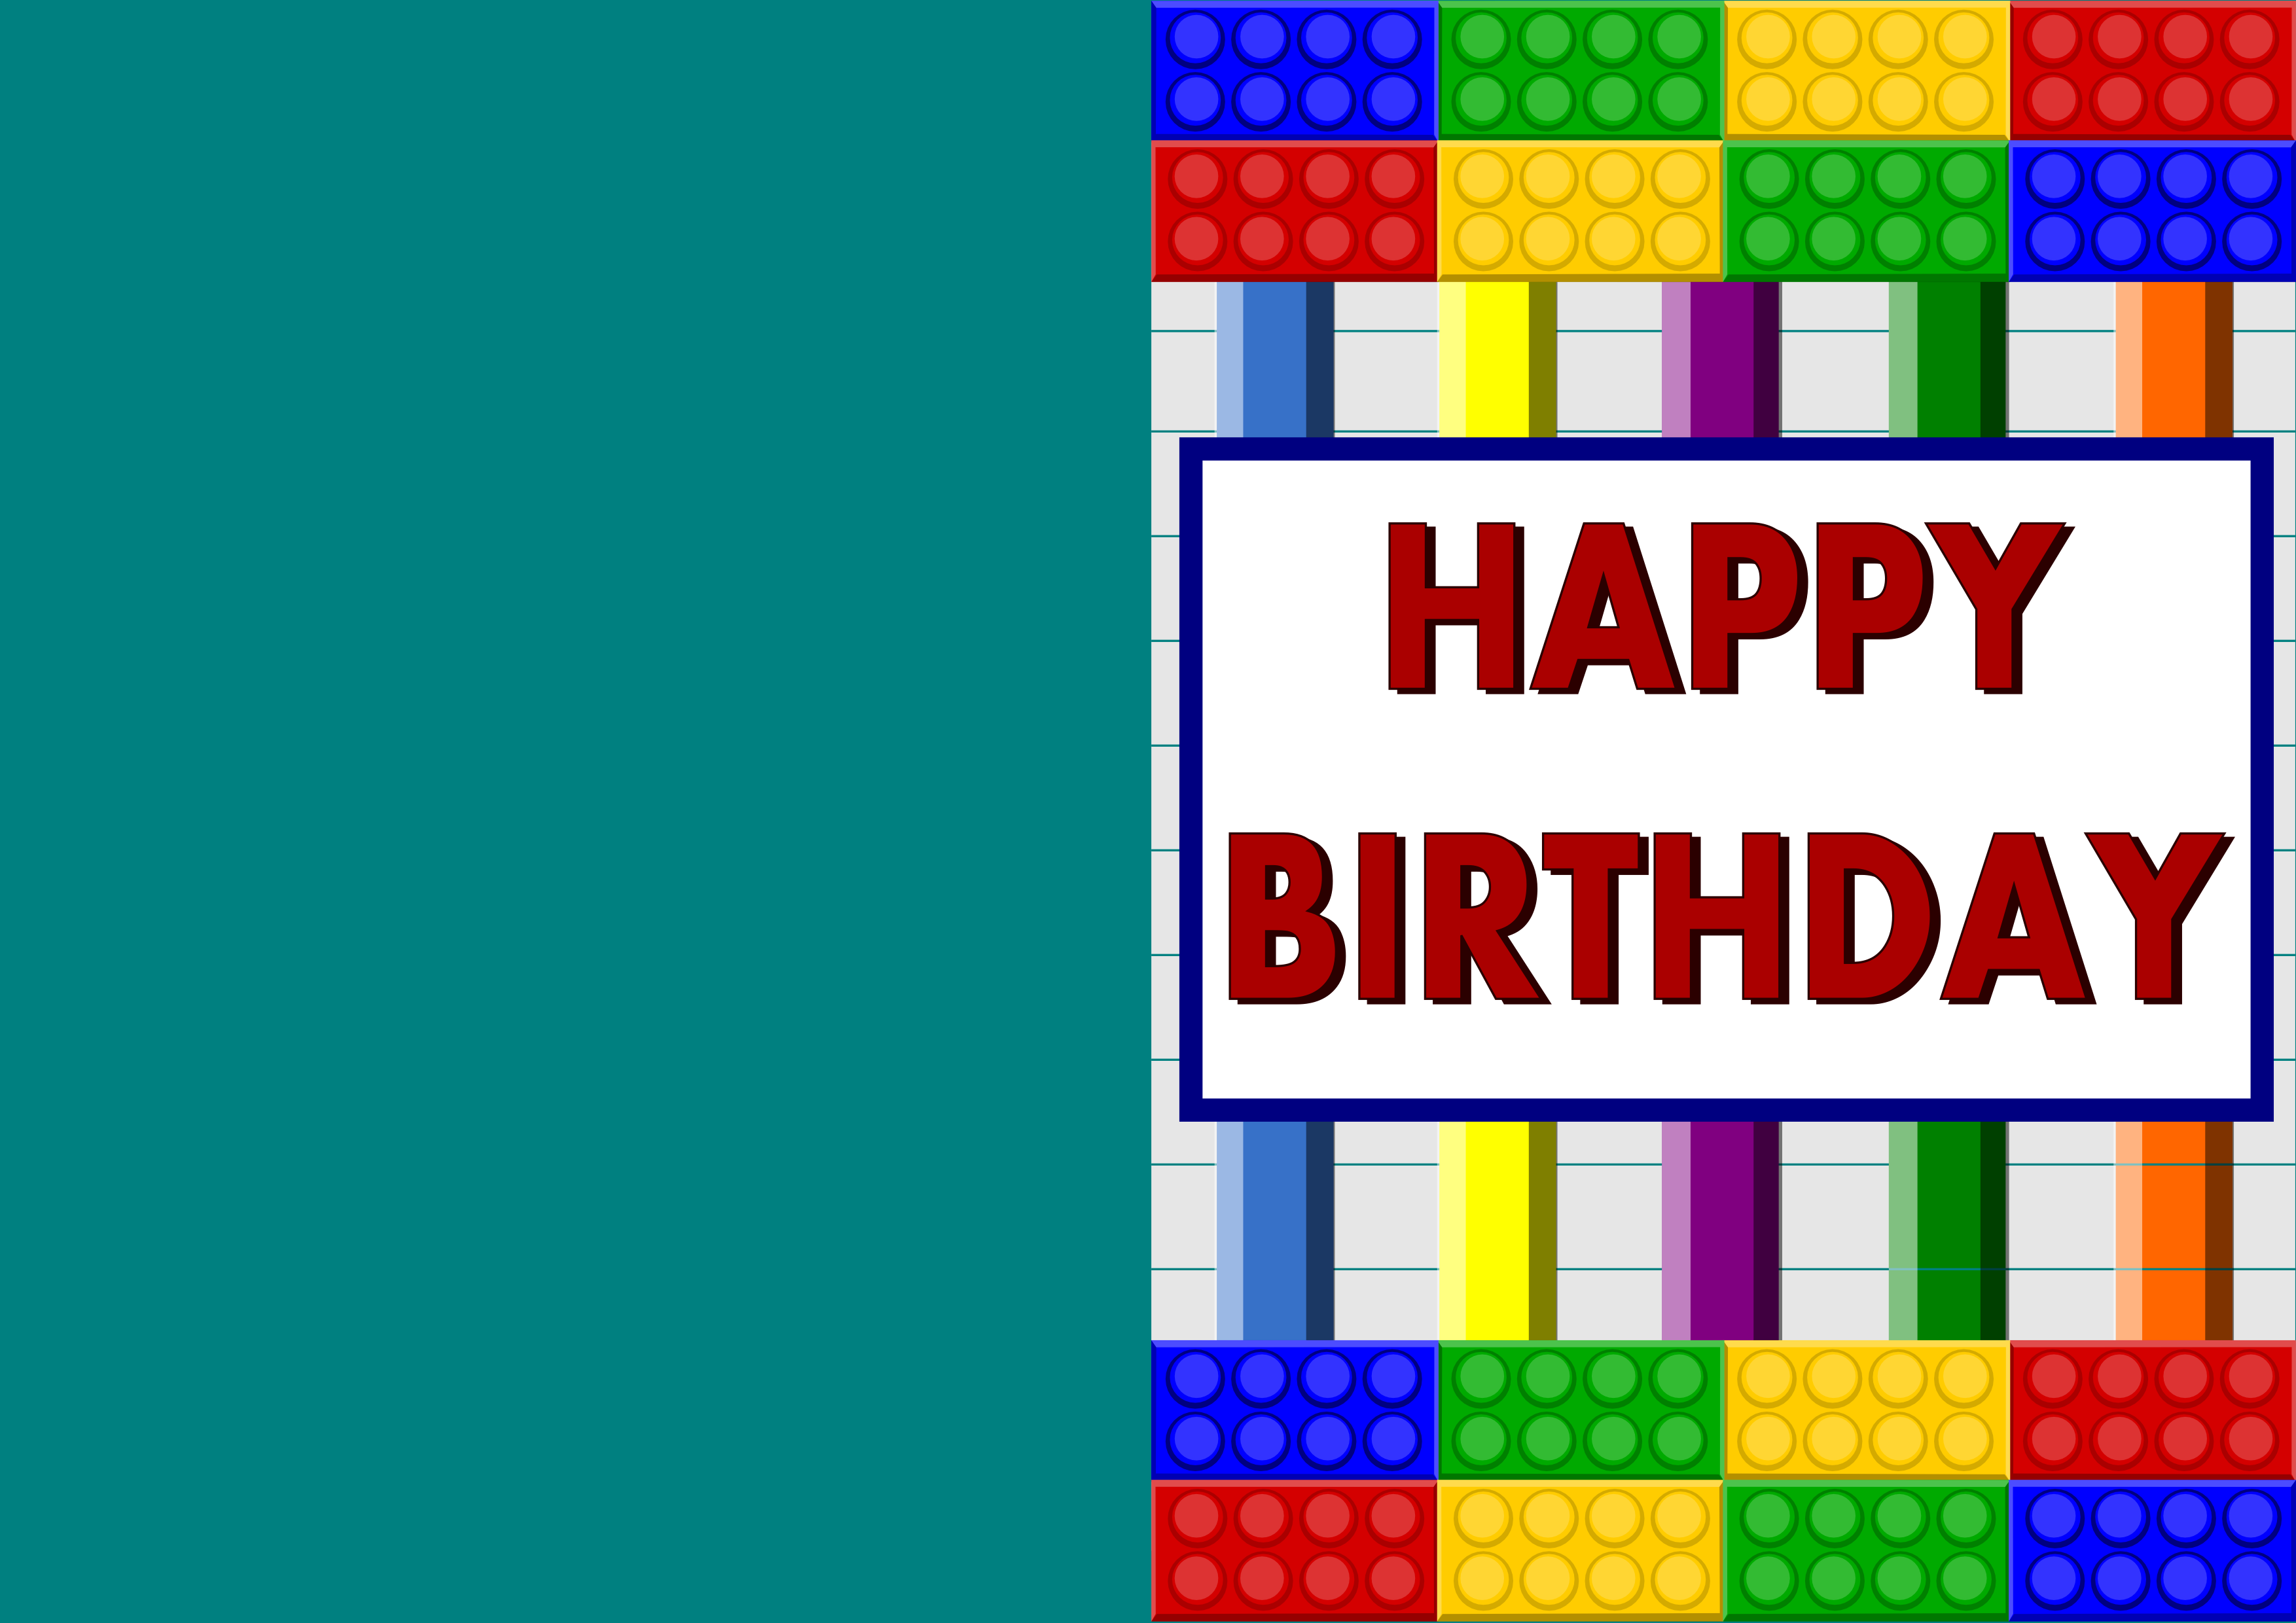 Printable Cards Lego Birthday Cards Free Printable Birthday Cards Birthday Card Printable